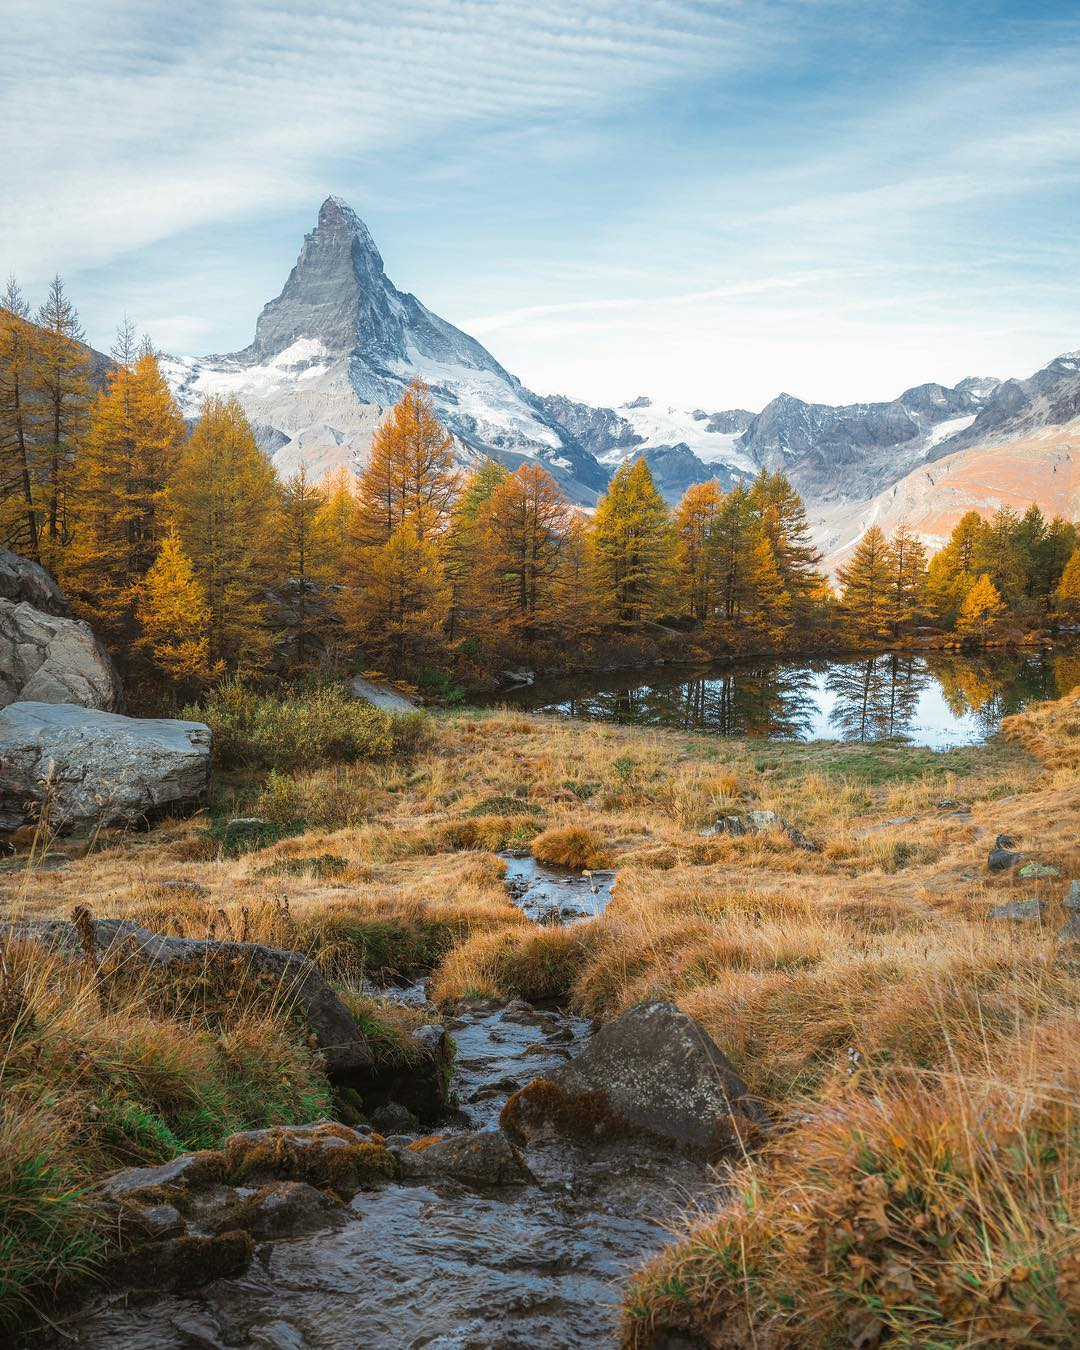 Zermatt 5 Lakes Hike in the fall with yellow larches